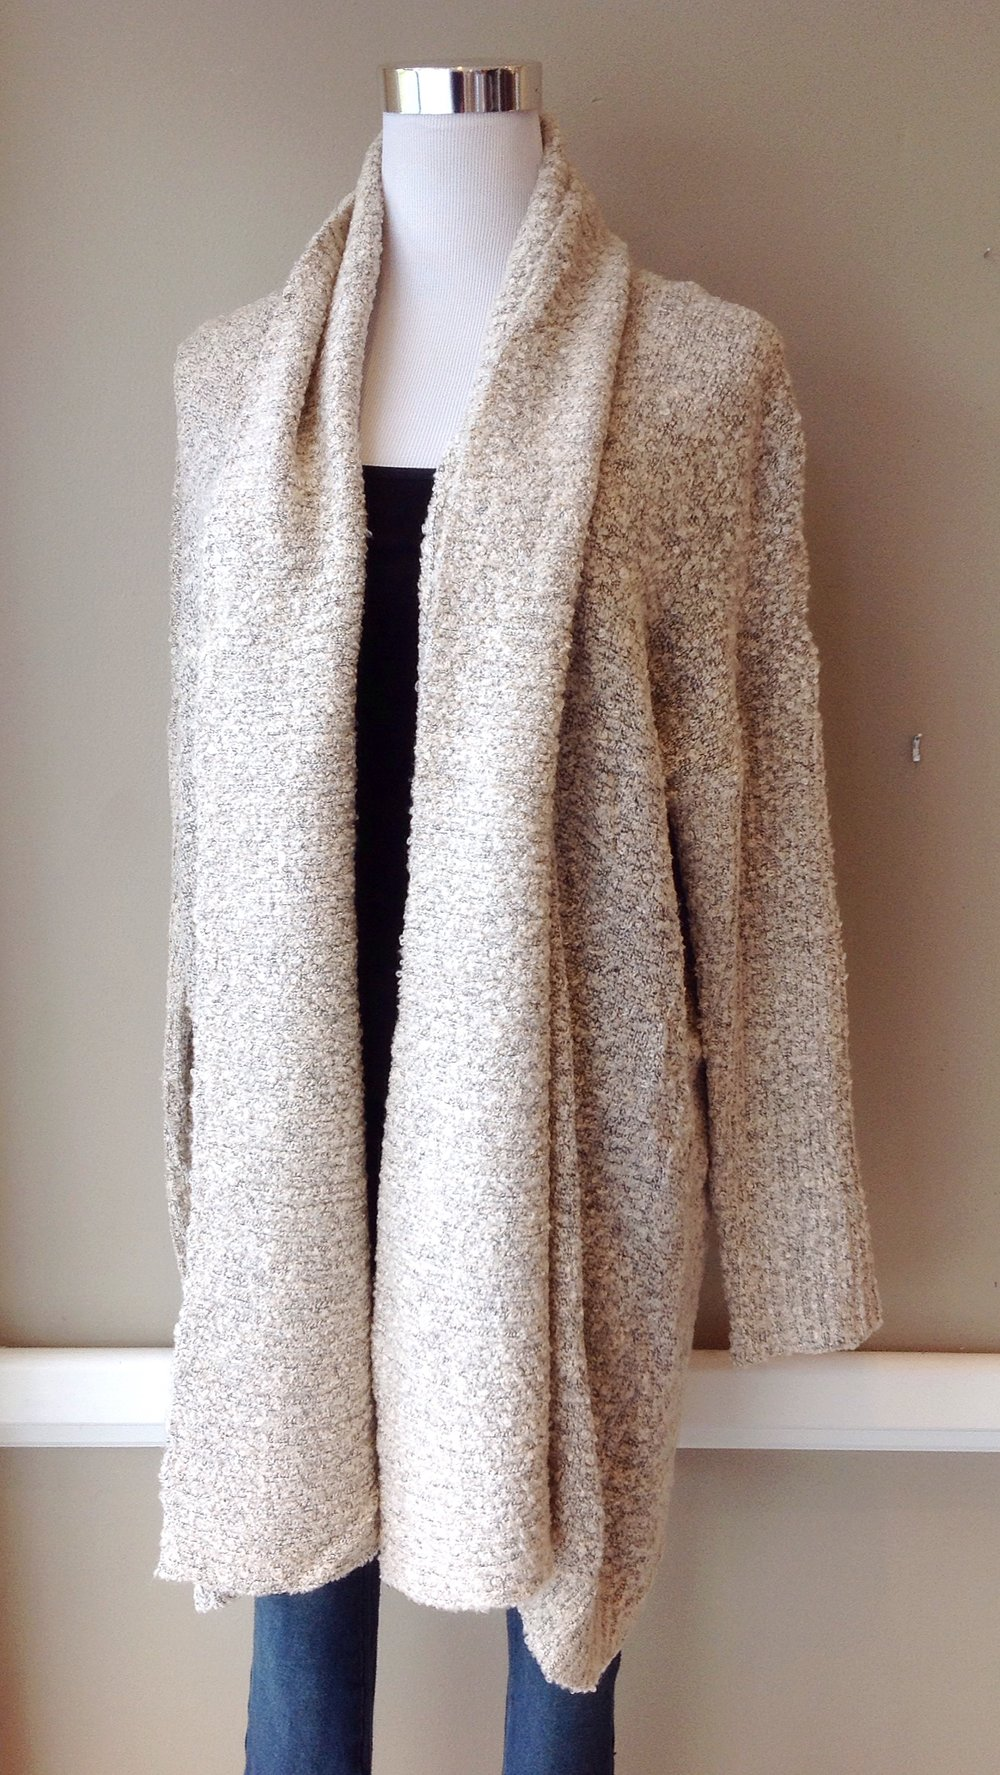 Bouclé open-front cardigan in oatmeal, $38